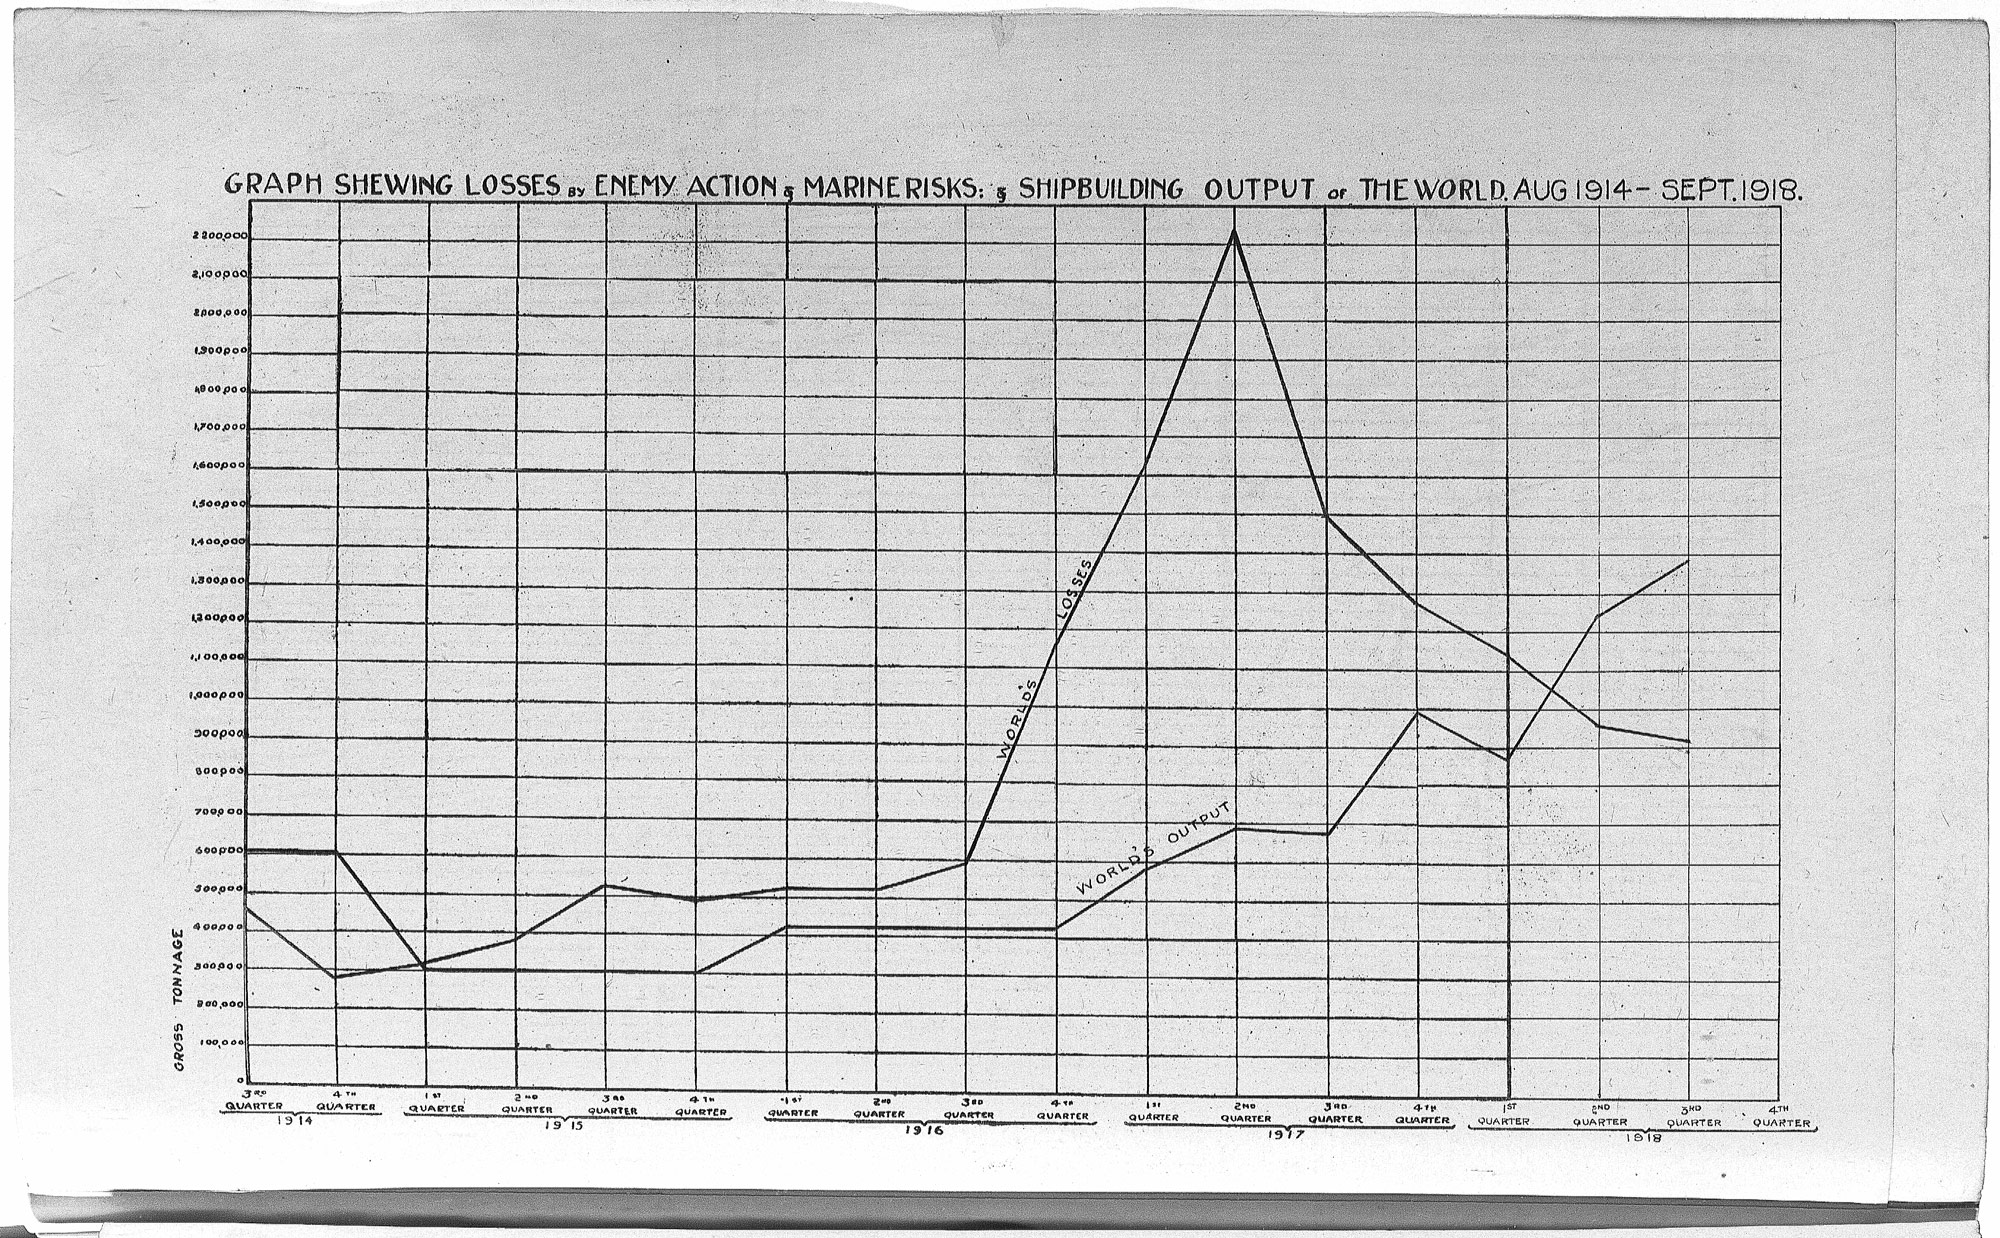 graph showing the gross tonnage lost by enemy action and marine risks over  the course of